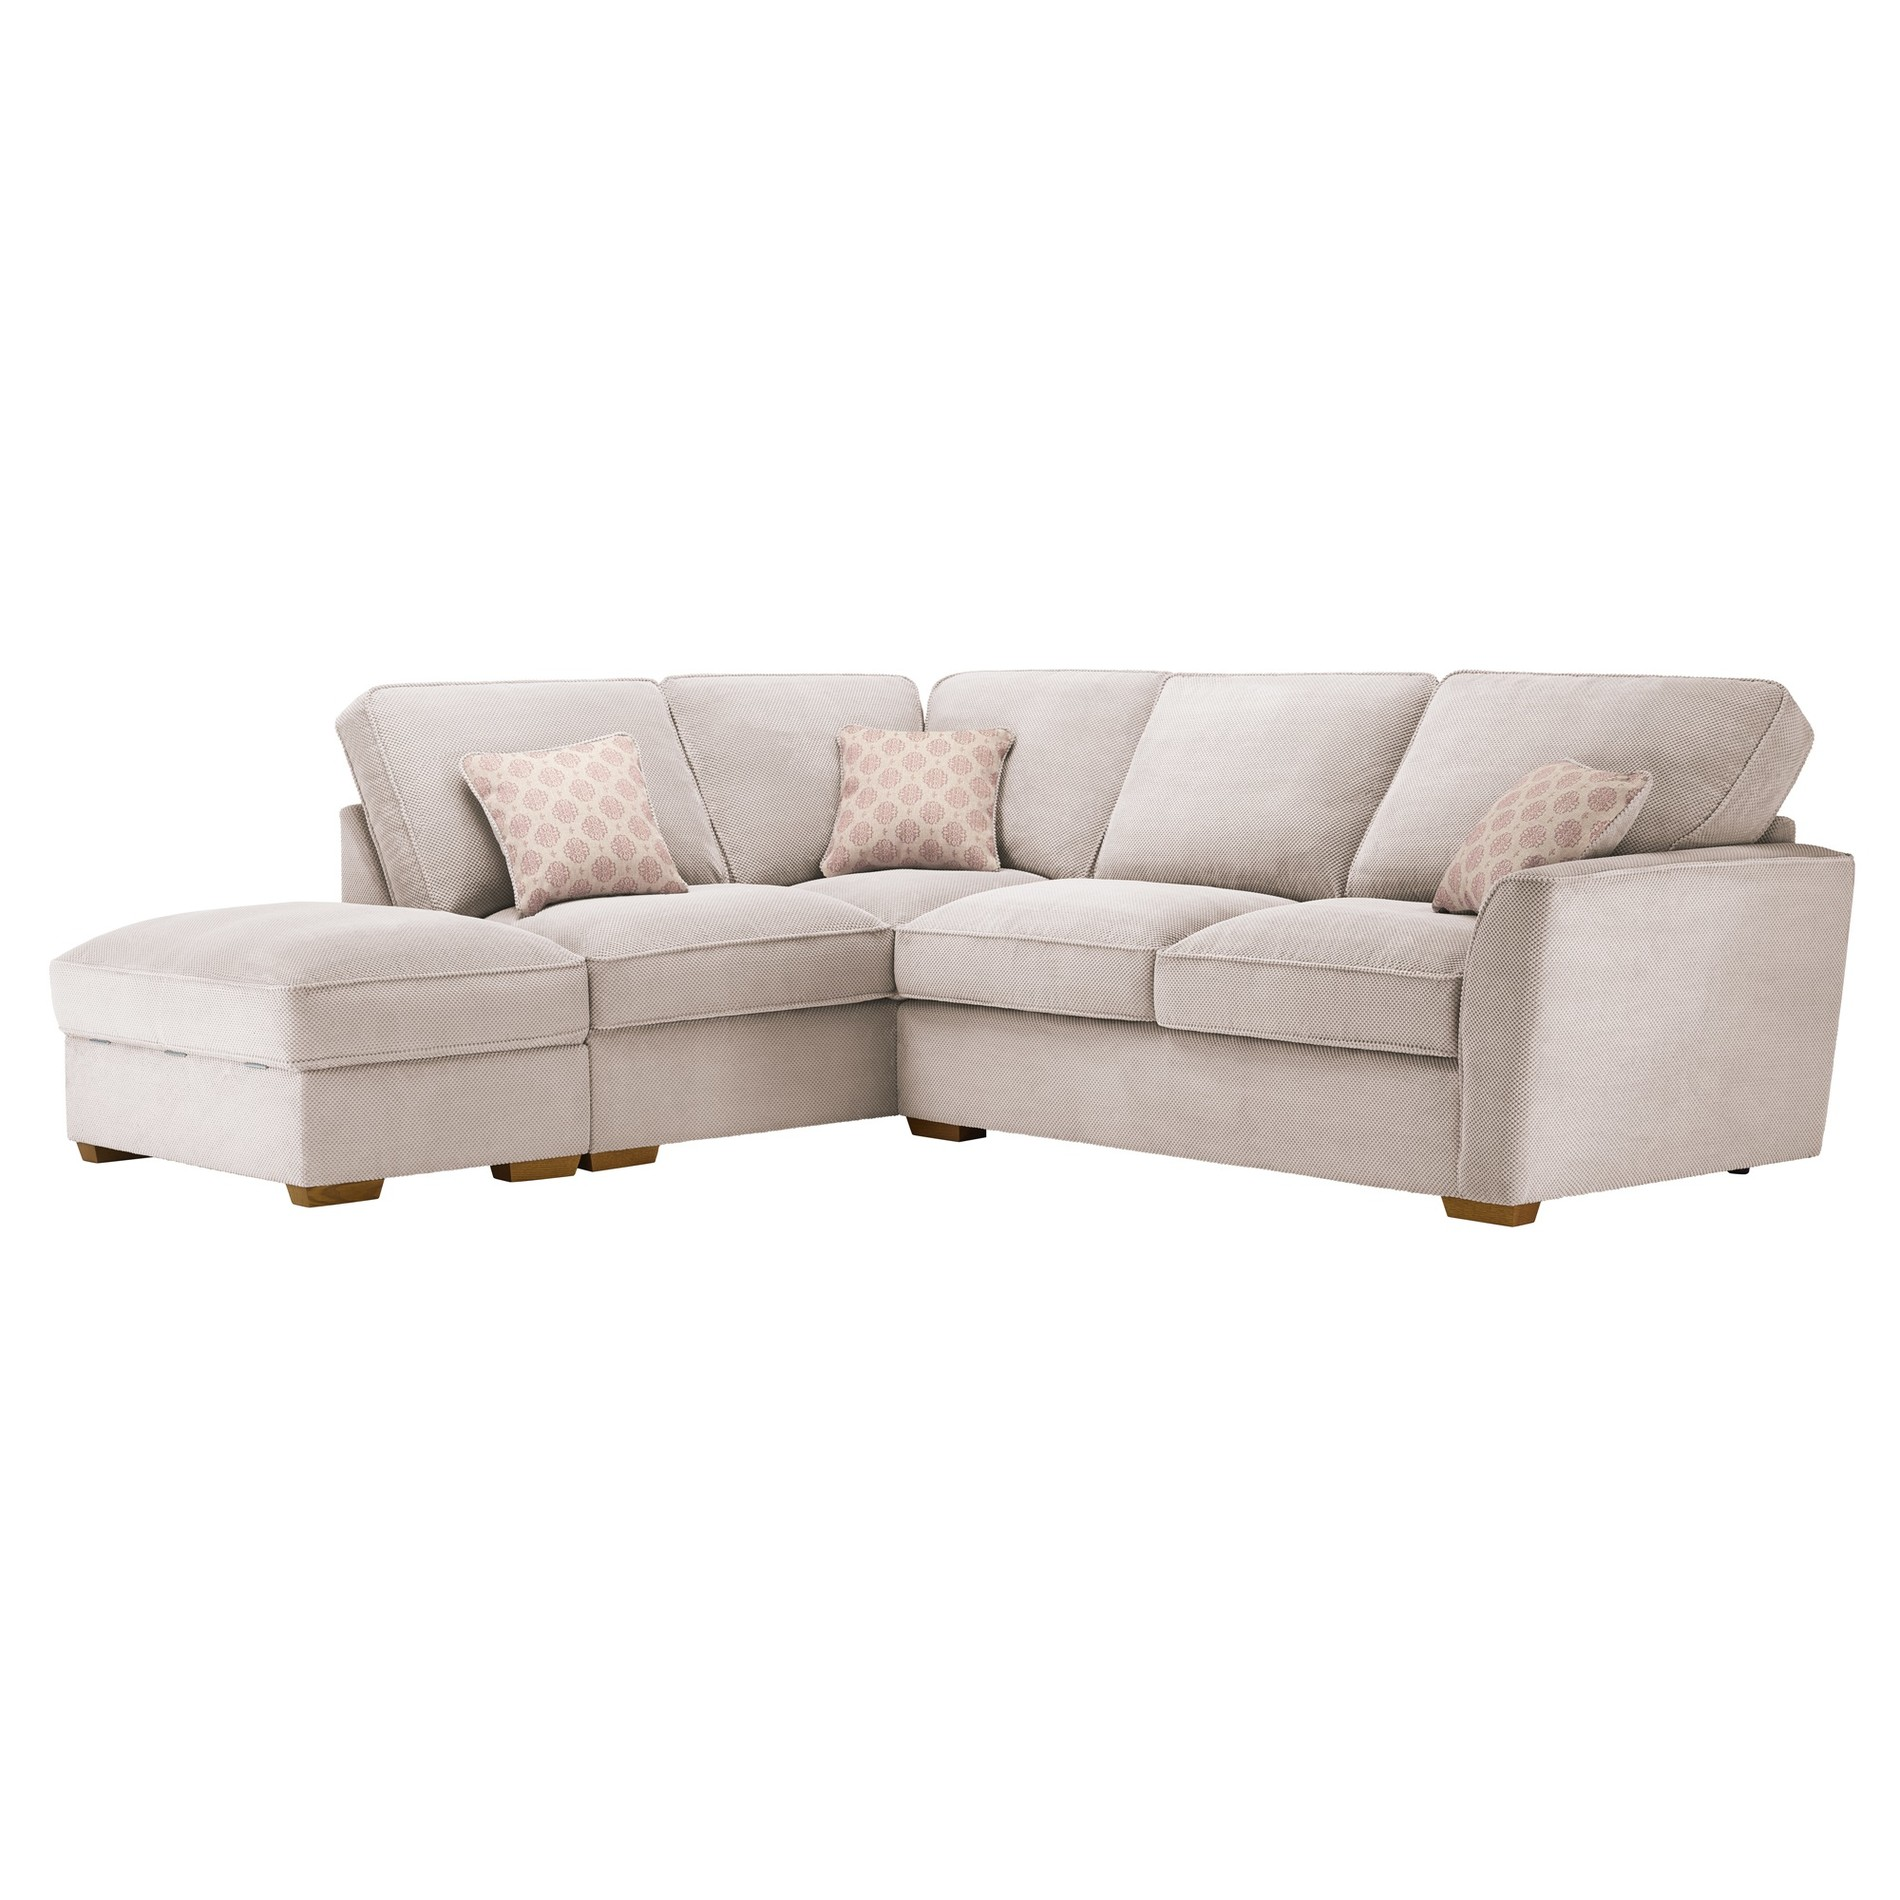 Nebraska Right Hand Corner Sofa with High Back in Aero Fawn